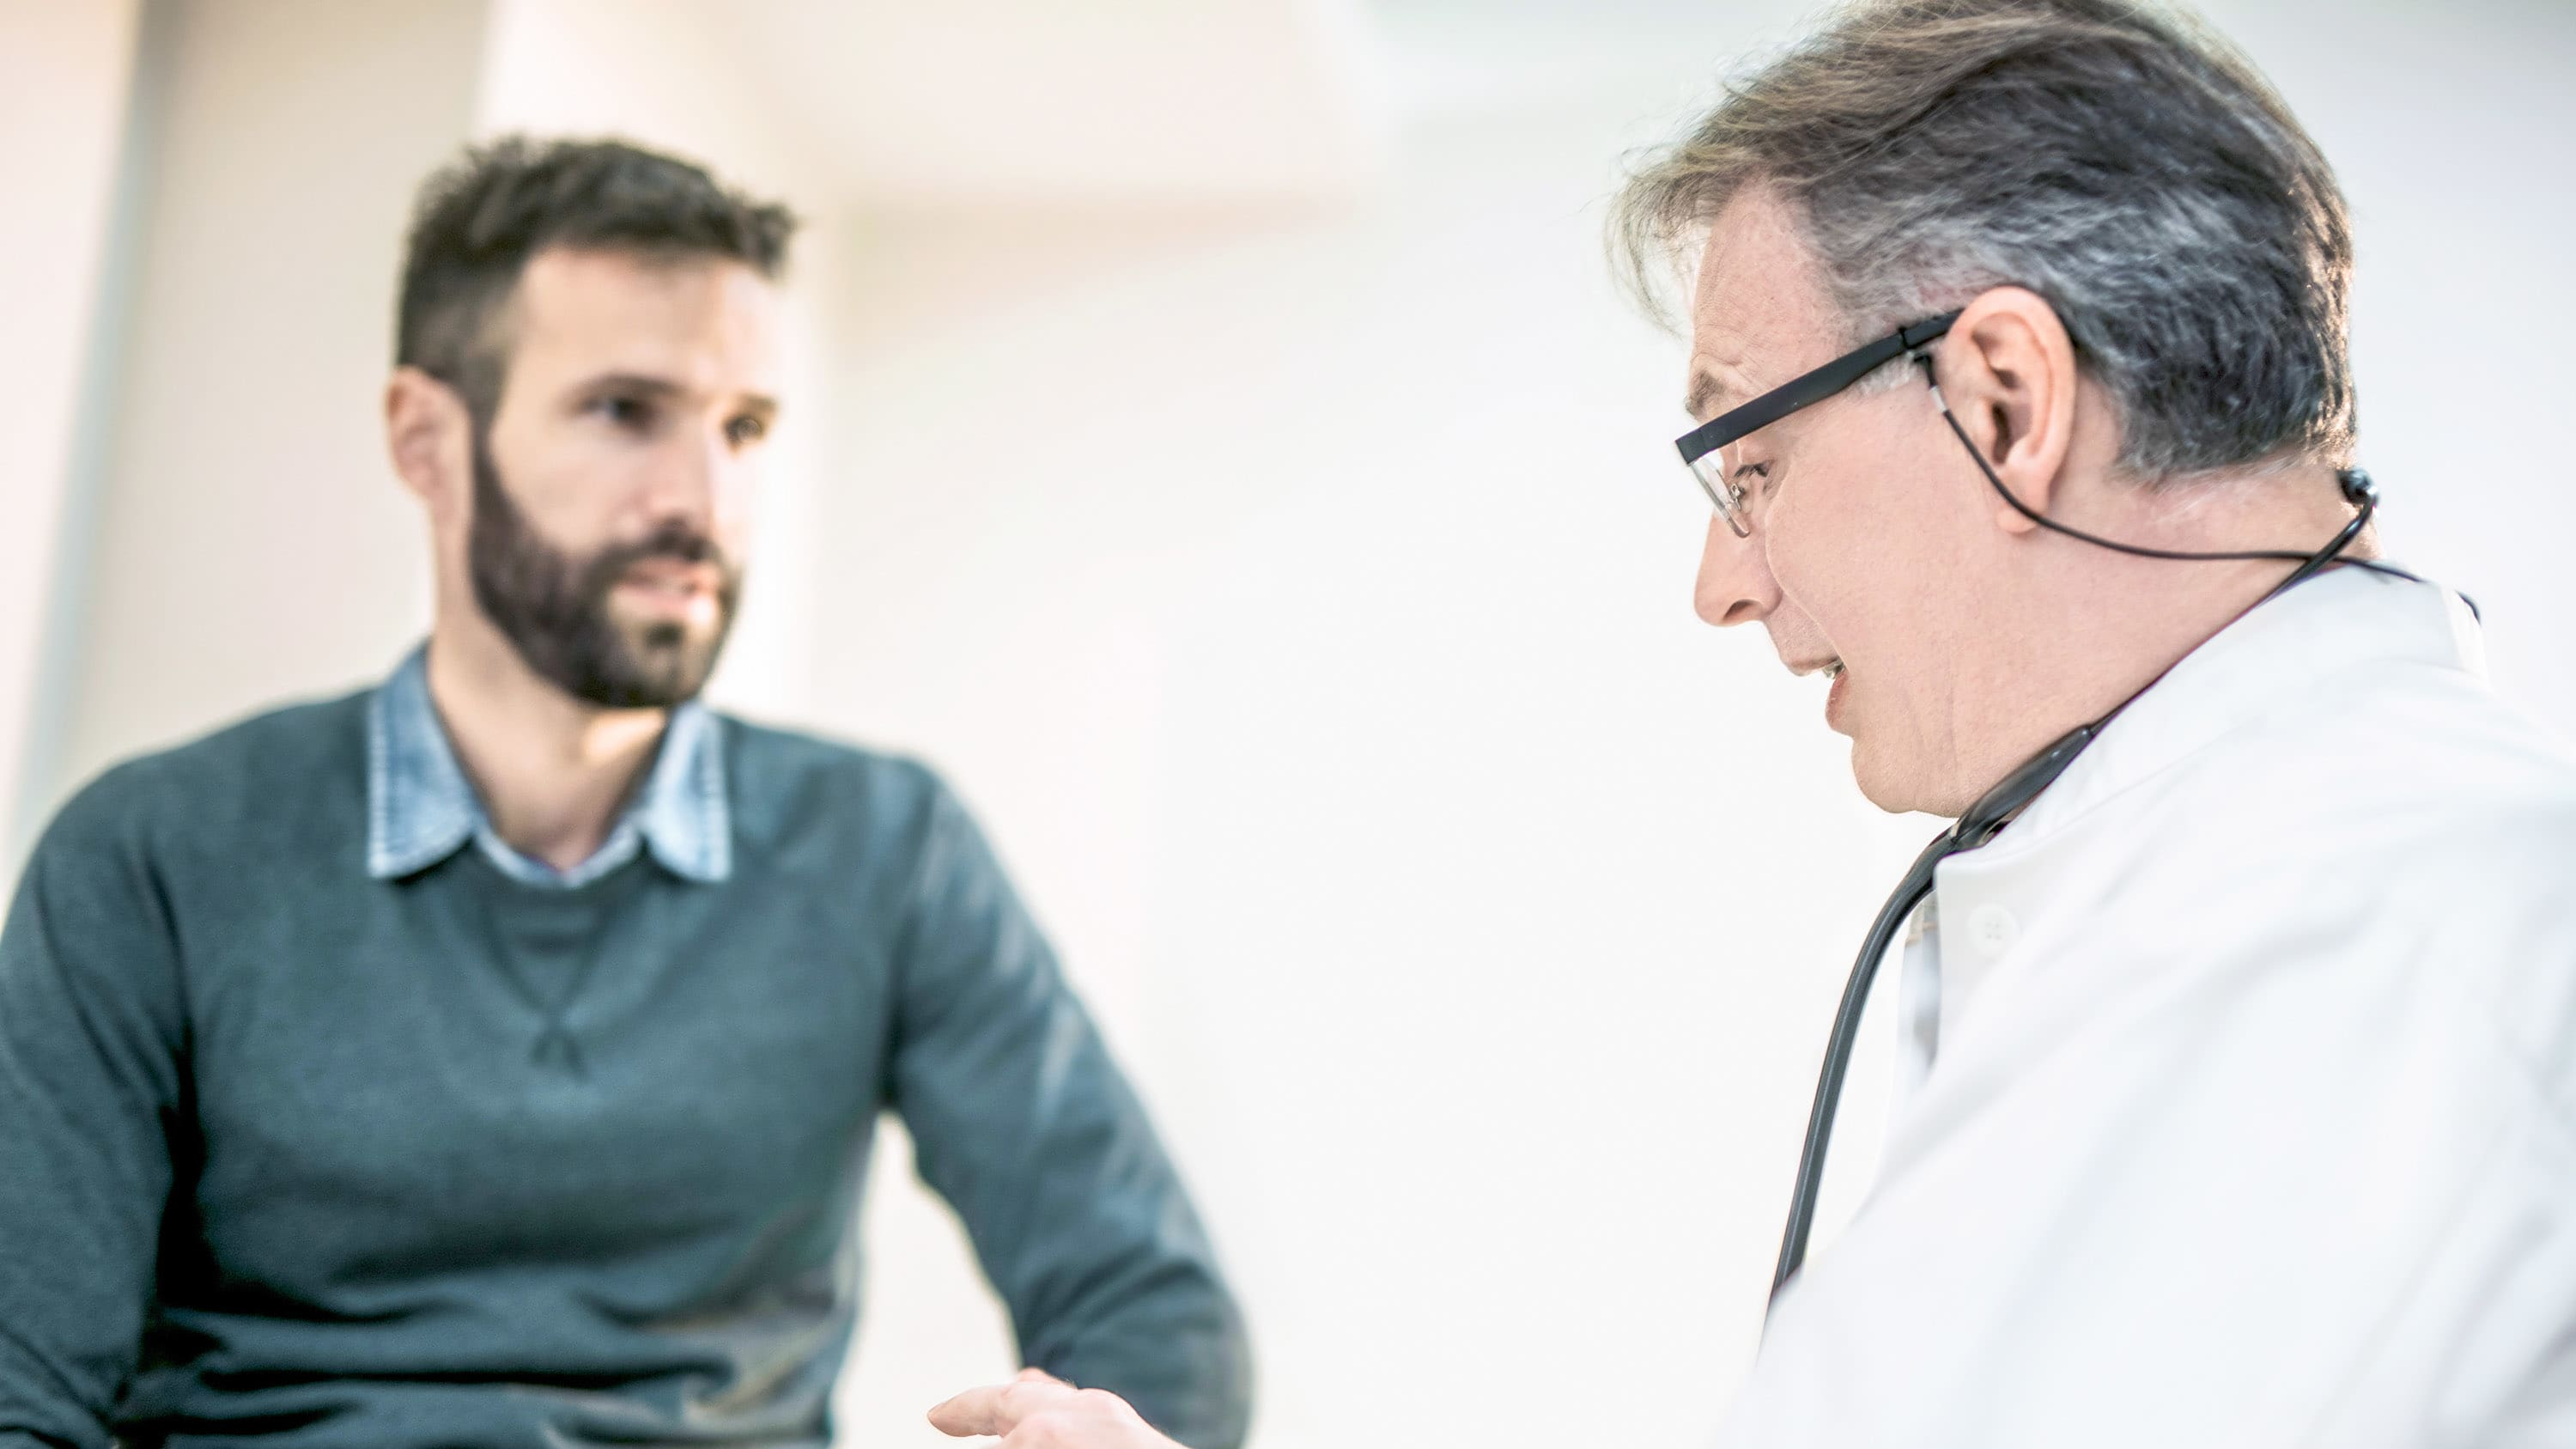 Doctor and patient, perhaps discussing minimally invasive surgery